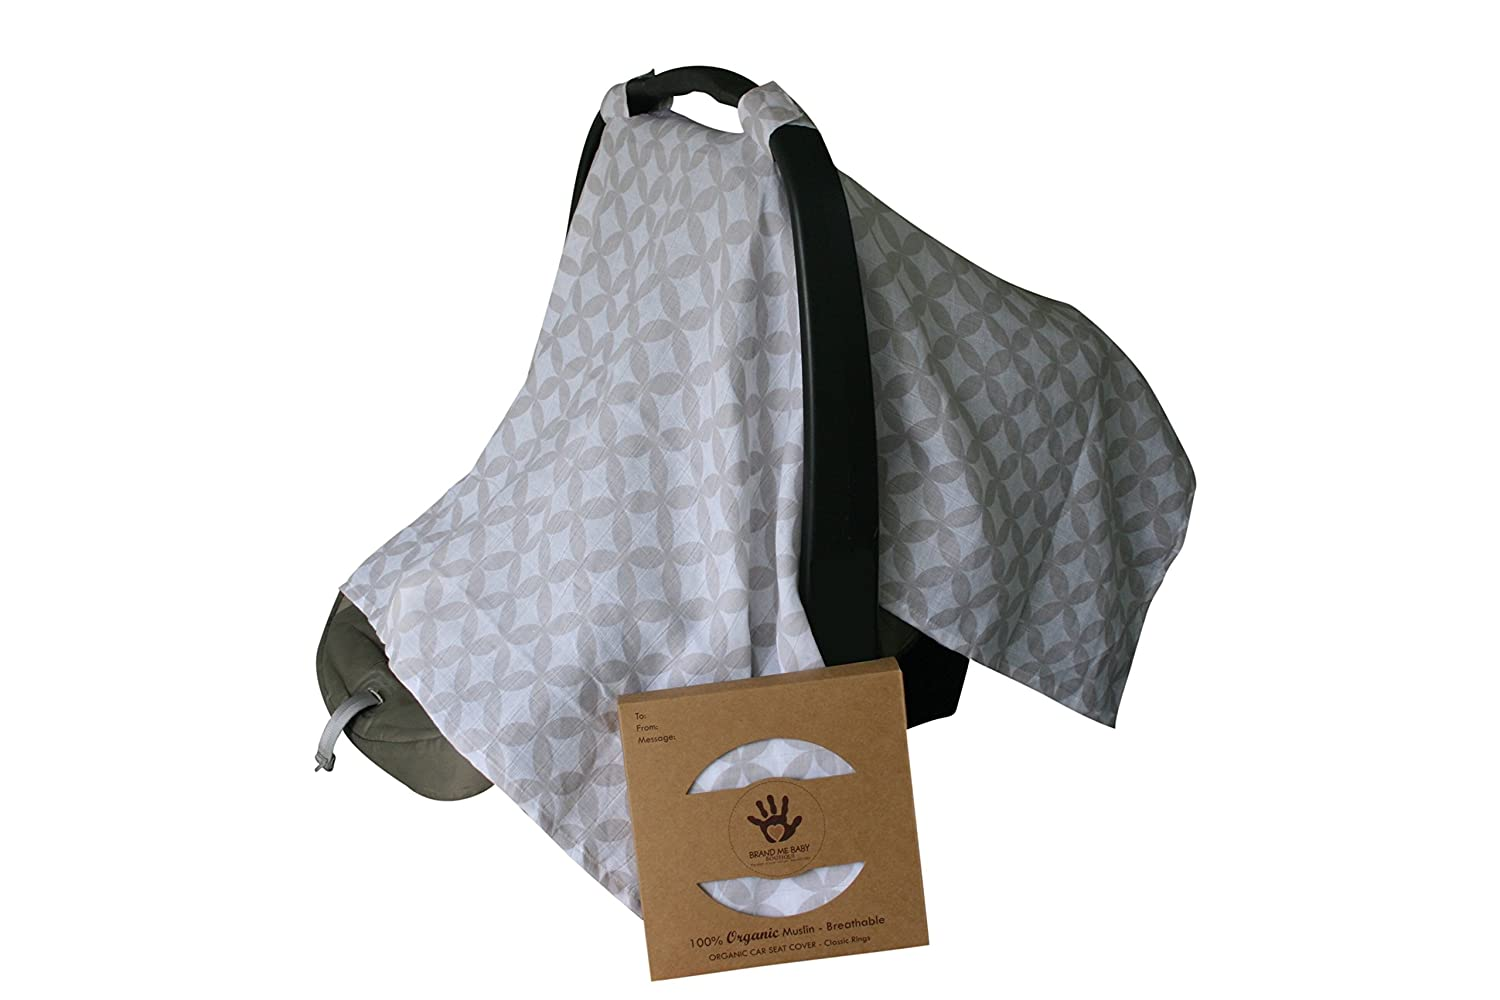 Amazon.com 100% ORGANIC Cotton Muslin CAR SEAT CANOPY/ COVER by BRAND ME BABY BOUTIQUE-Classic Rings/Boy/Girl Design-Best Baby Shower Gift!- Lightweight ...  sc 1 st  Amazon.com & Amazon.com: 100% ORGANIC Cotton Muslin CAR SEAT CANOPY/ COVER by ...